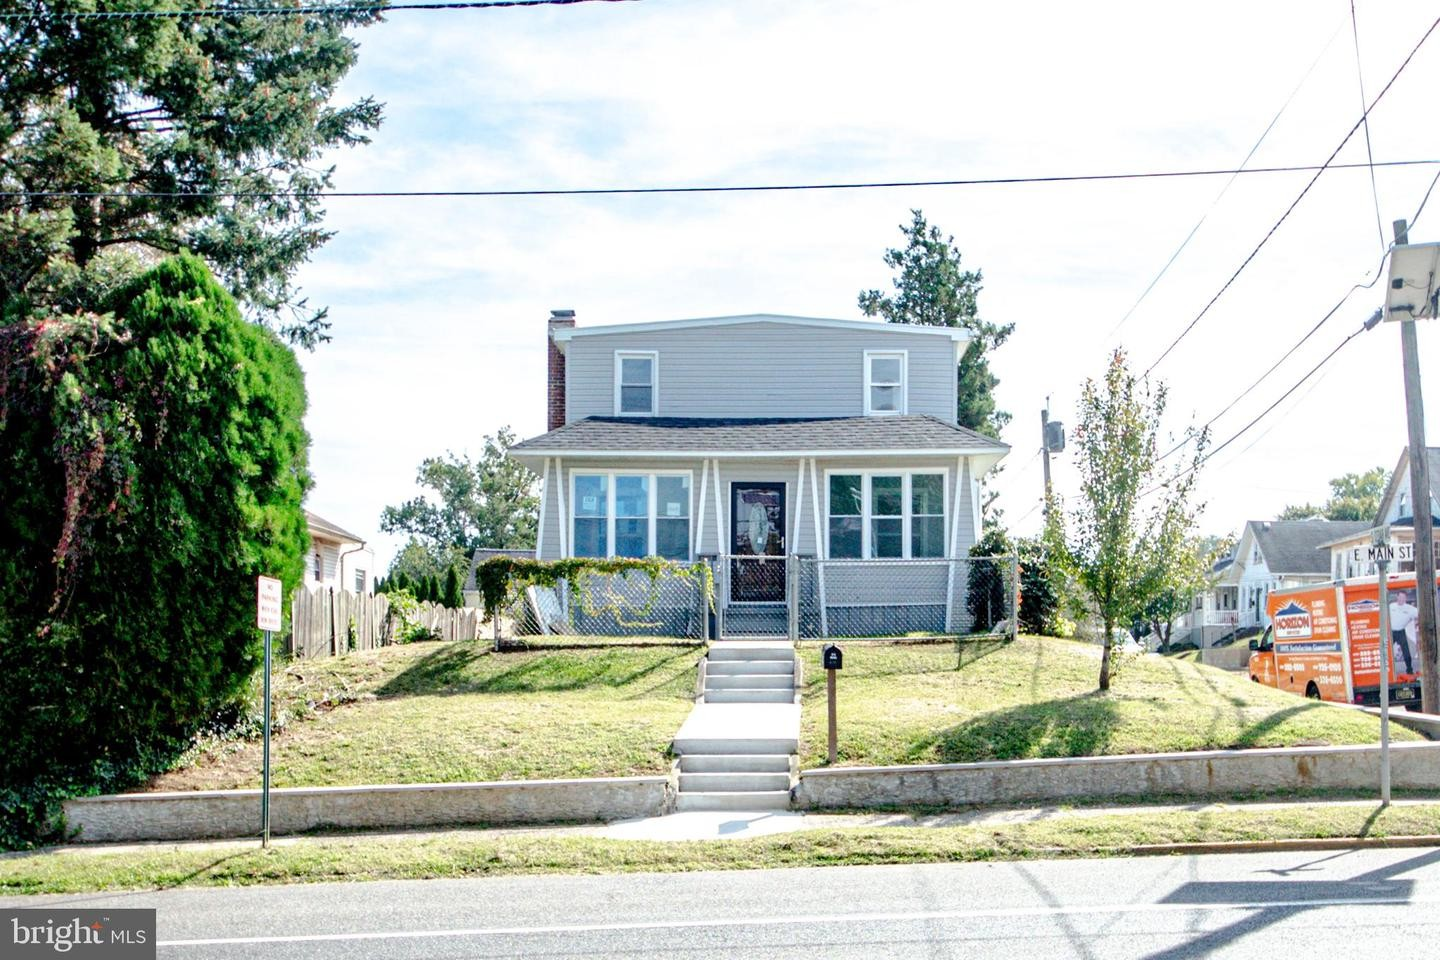 4-Bedroom House In Maple Heights